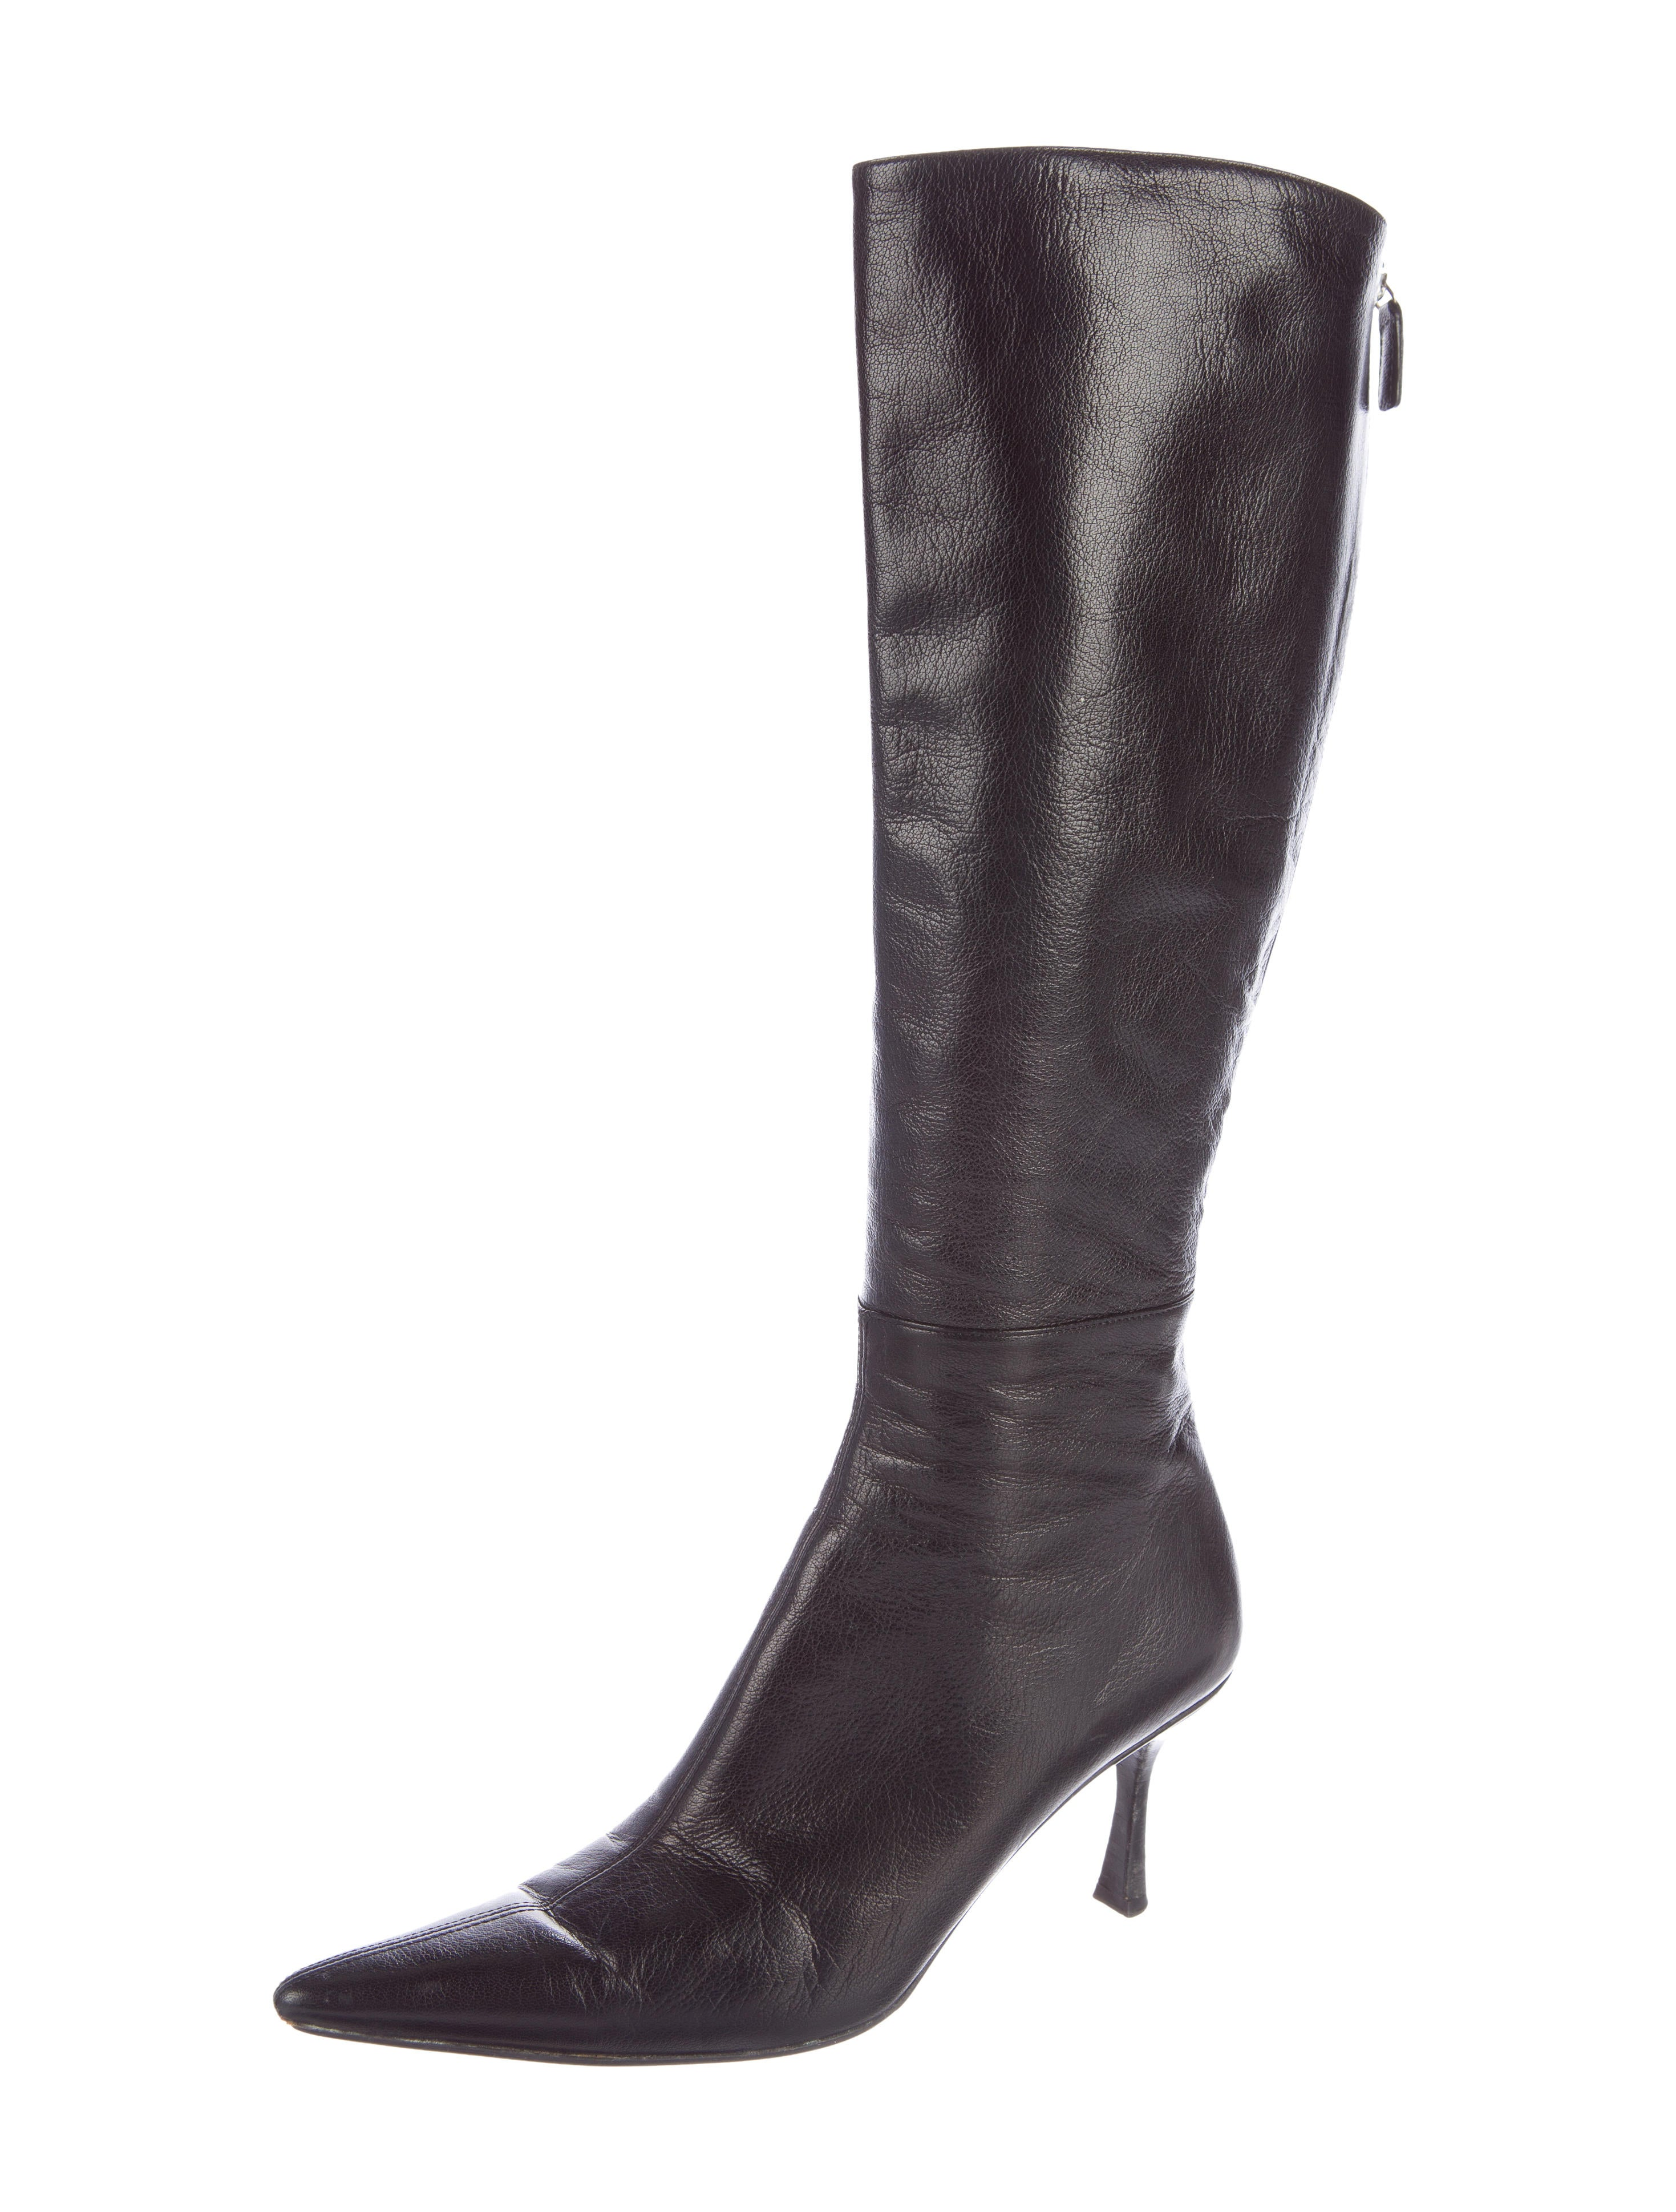 gucci leather pointed toe boots shoes guc124108 the